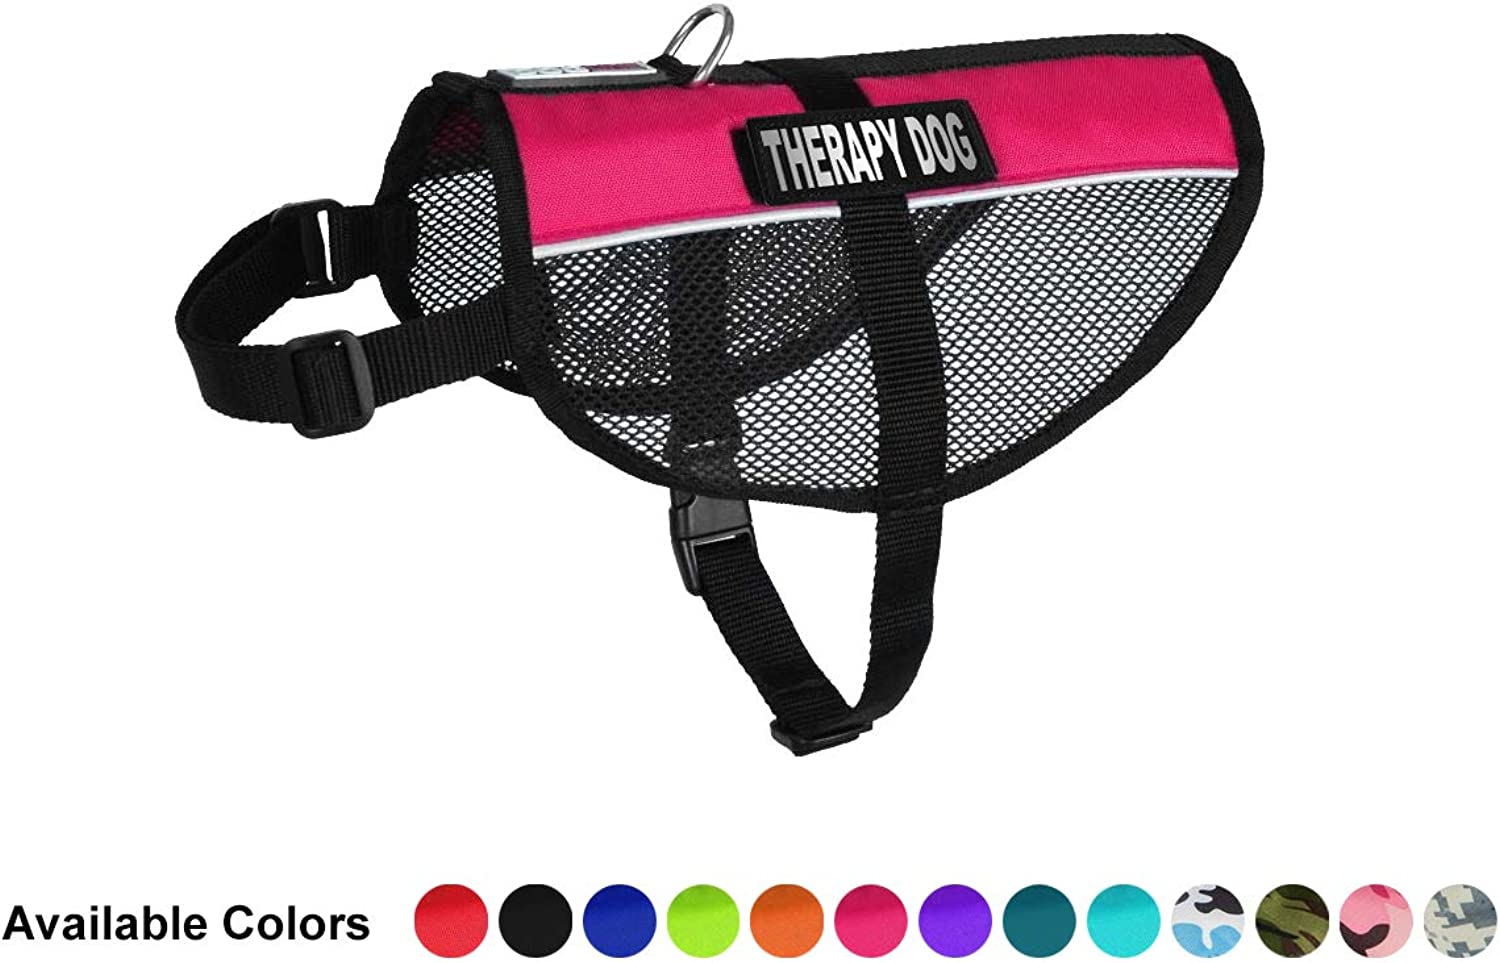 Dogline MaxAire MultiPurpose Mesh Vest for Dogs and 2 Removable Therapy Dog Patches, Medium, Pink